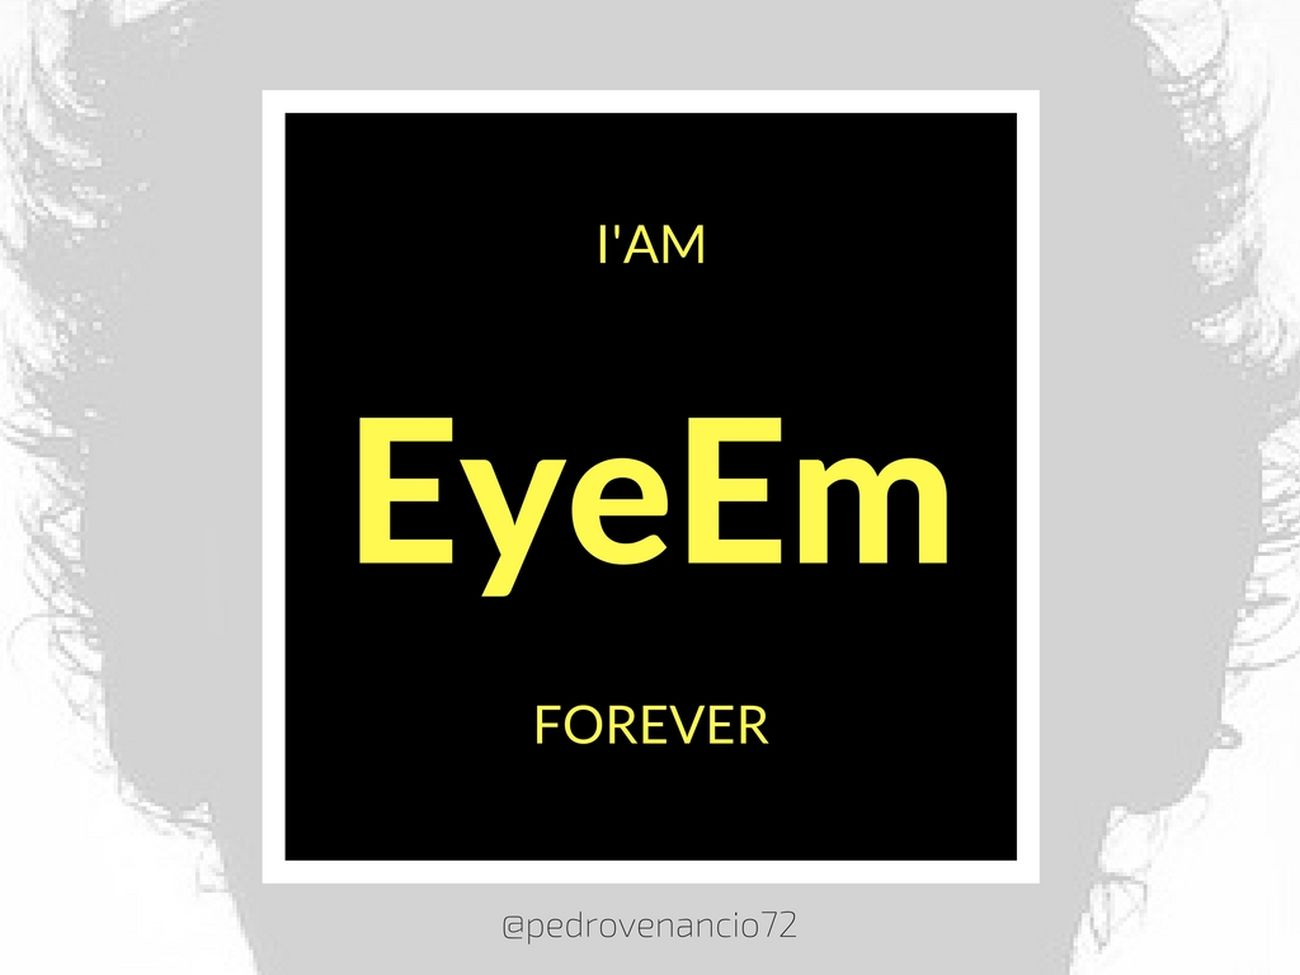 I love the EyeEm and I have to confess that I will be EyeEm Forever Thanks EyeEm team for the excellent work your ... EyeEm Eyeem Berlin EyeEm Hong Kong EyeEm NYC EyeEm Team Information Message Placard Text Western Script